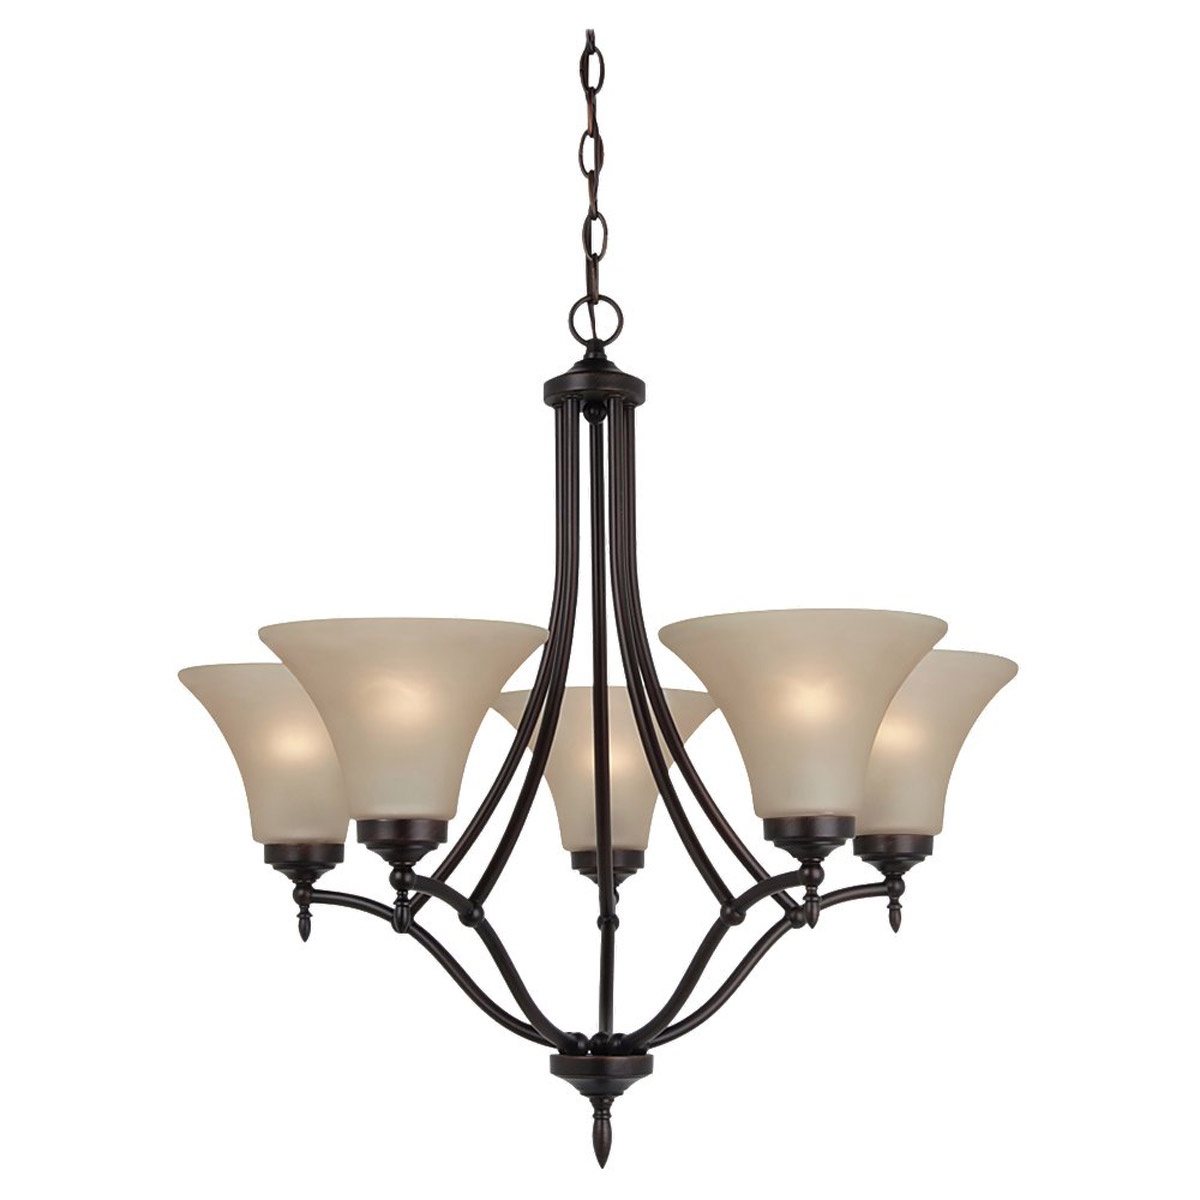 Sea Gull Lighting Montreal 5 Light Chandelier in Burnt Sienna 31181BLE-710 photo